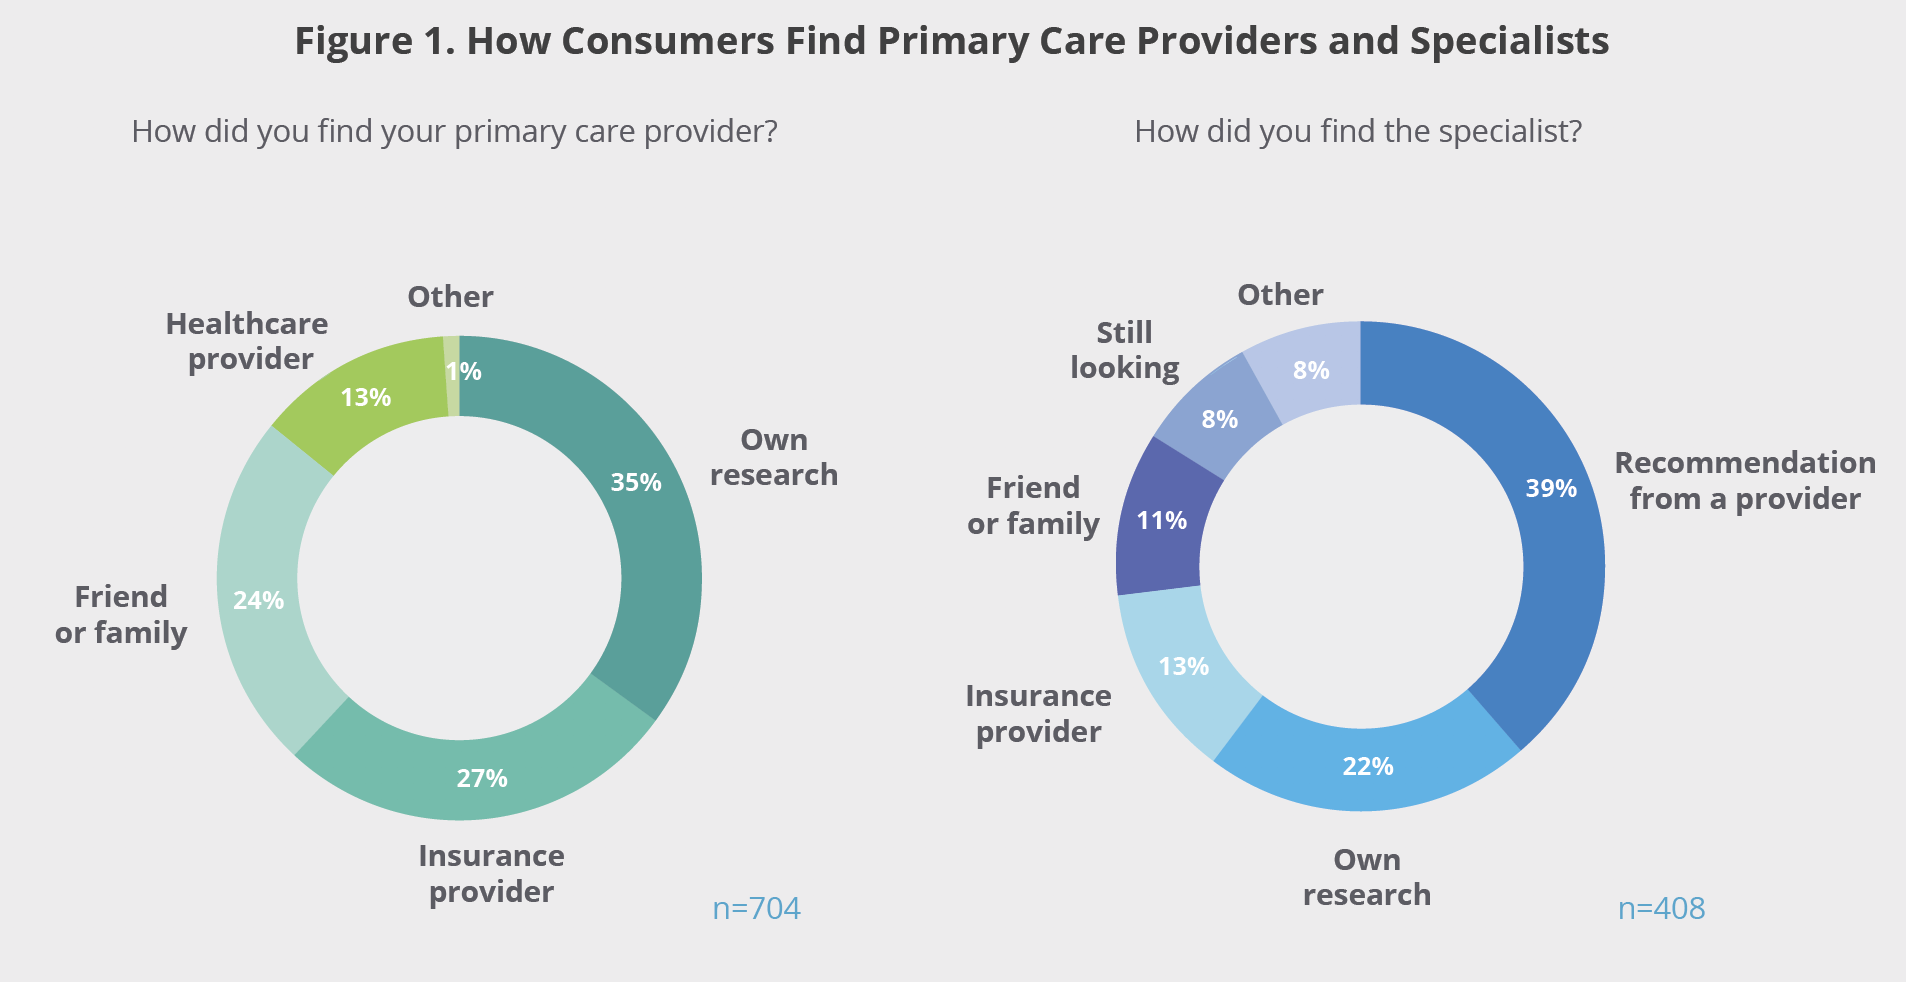 Figure 1. How Consumers Find Primary Care Providers and Specialists